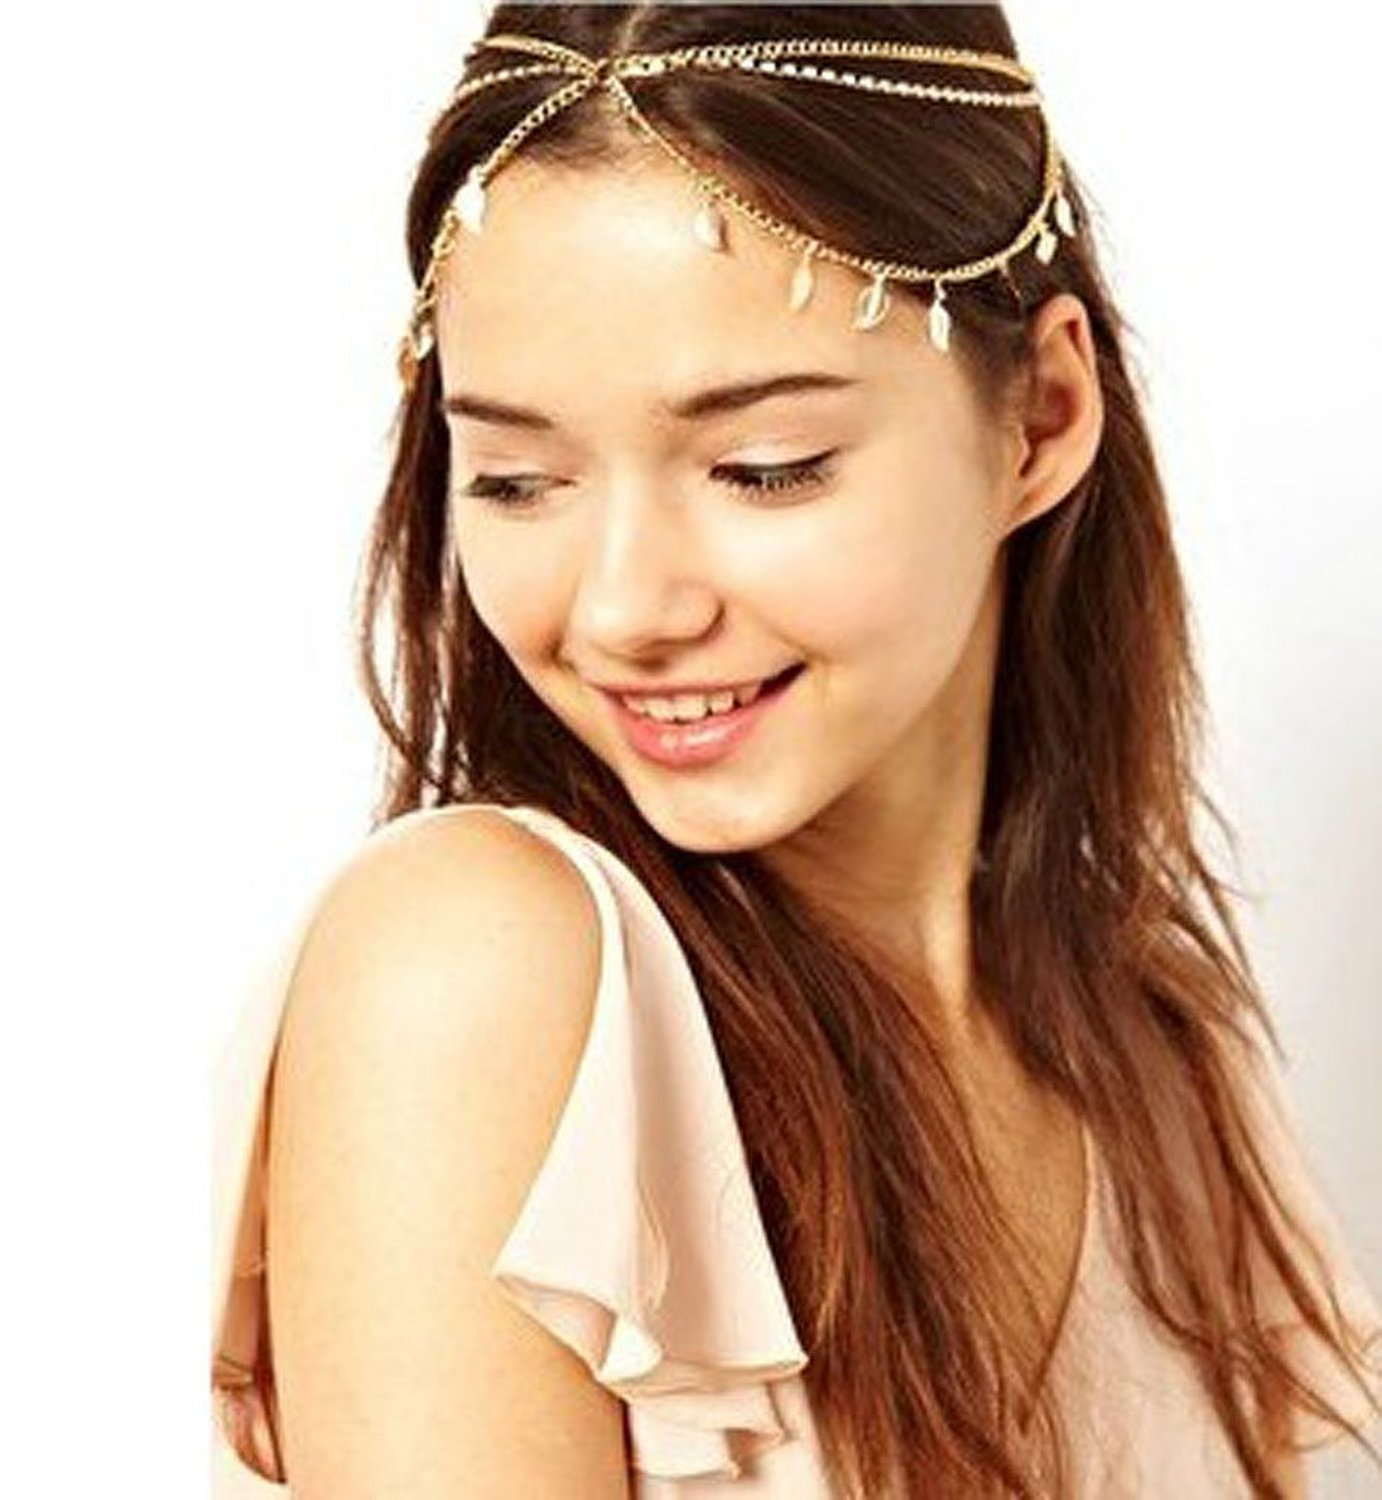 Amazon.com: WIIPU Bohemian Head Chain House Of Harlow Headpiece hip hop Headchain(wiipu-C58): Head Jewelry: Jewelry